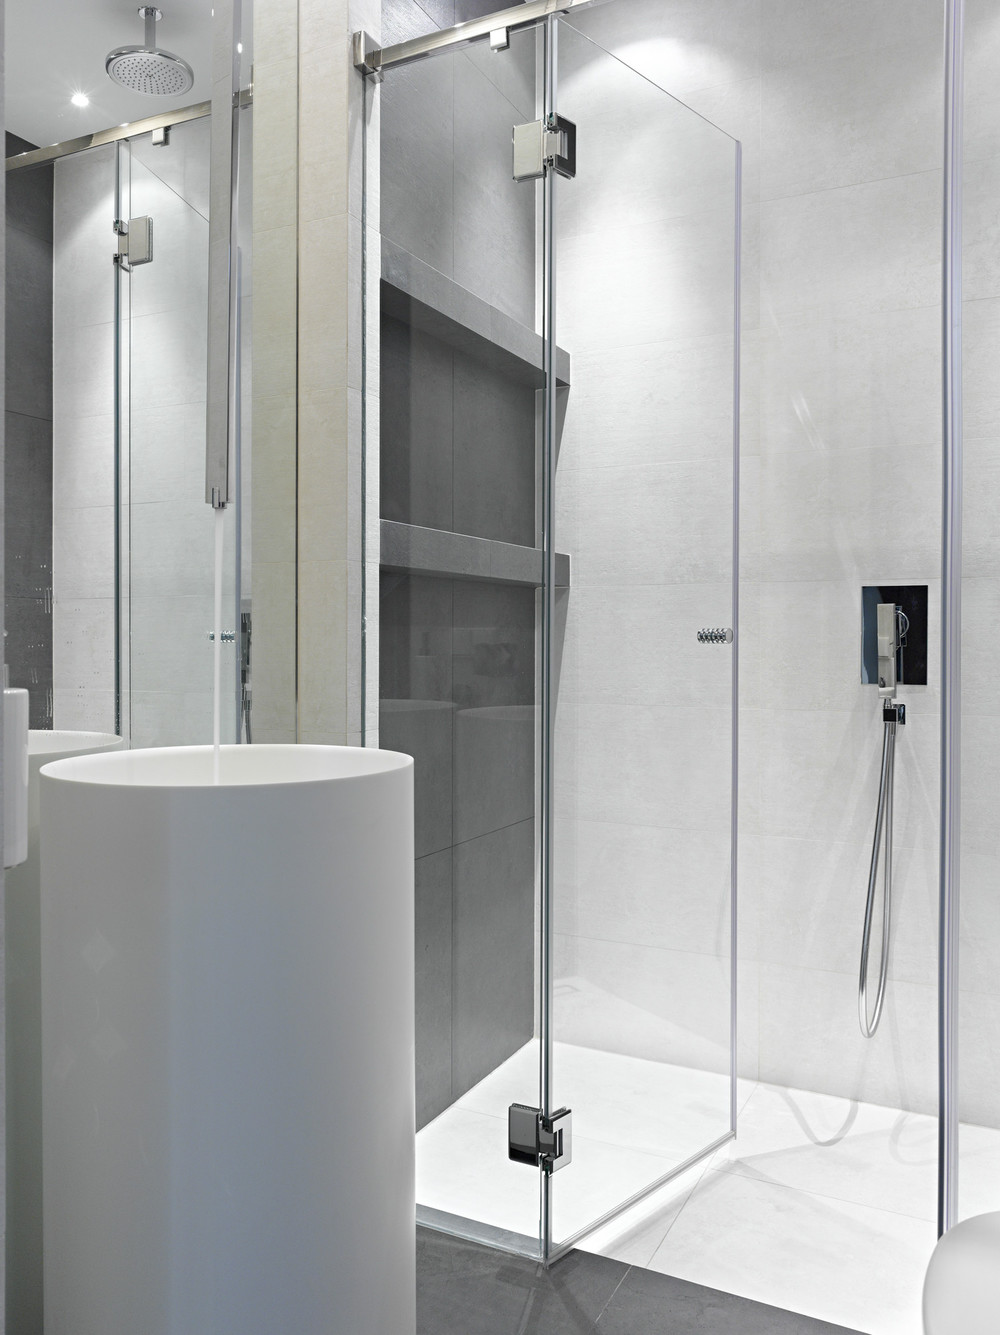 Luxury Shower - Invisible doors turn a home into an artistic feat of design